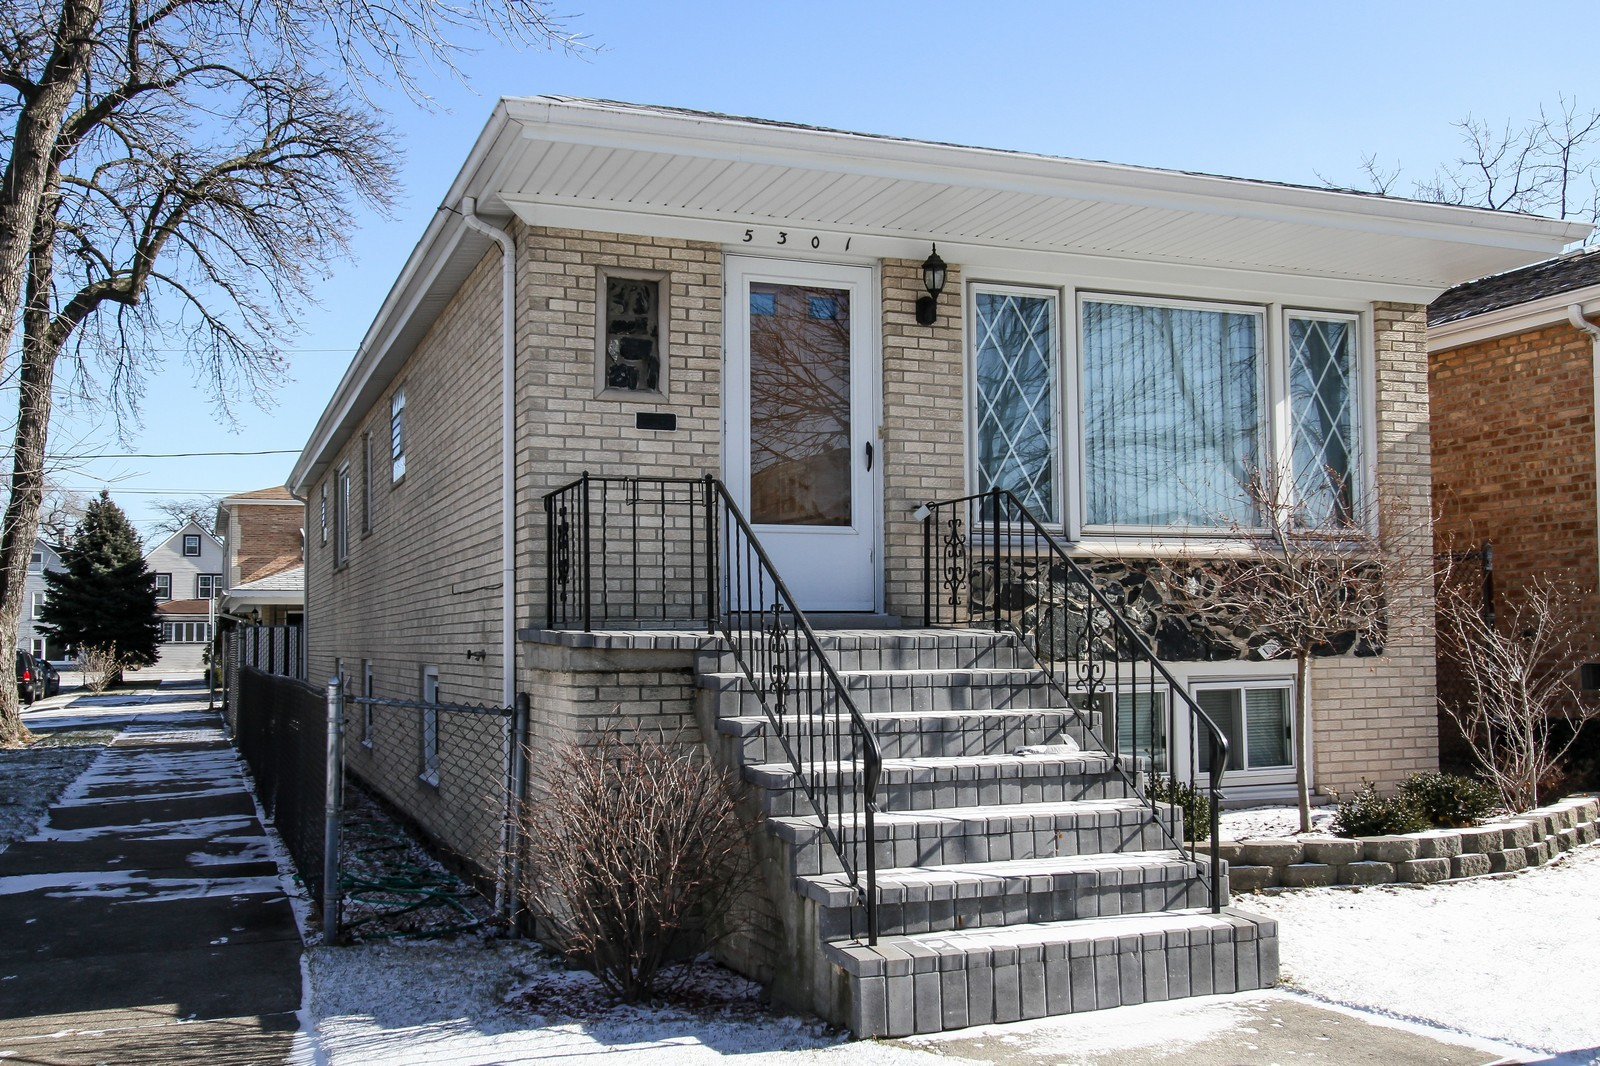 Real Estate Photography - 5301 S Parkside Ave, Chicago, IL, 60638 - Front View